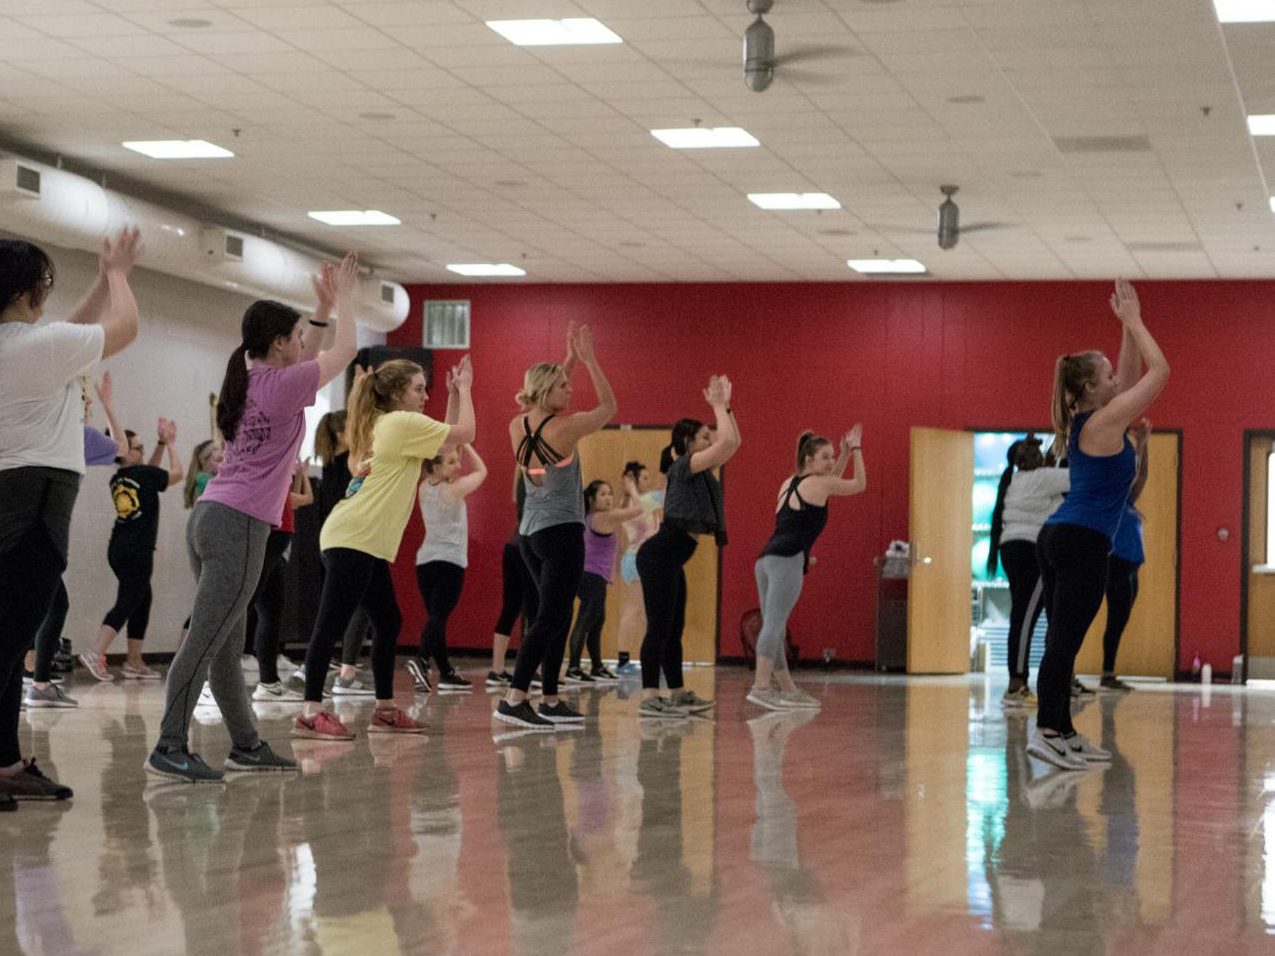 Students participate in a cardio dance class at the Campus Recreation Center on Jan. 9, 2018. | Daily Nebraskan